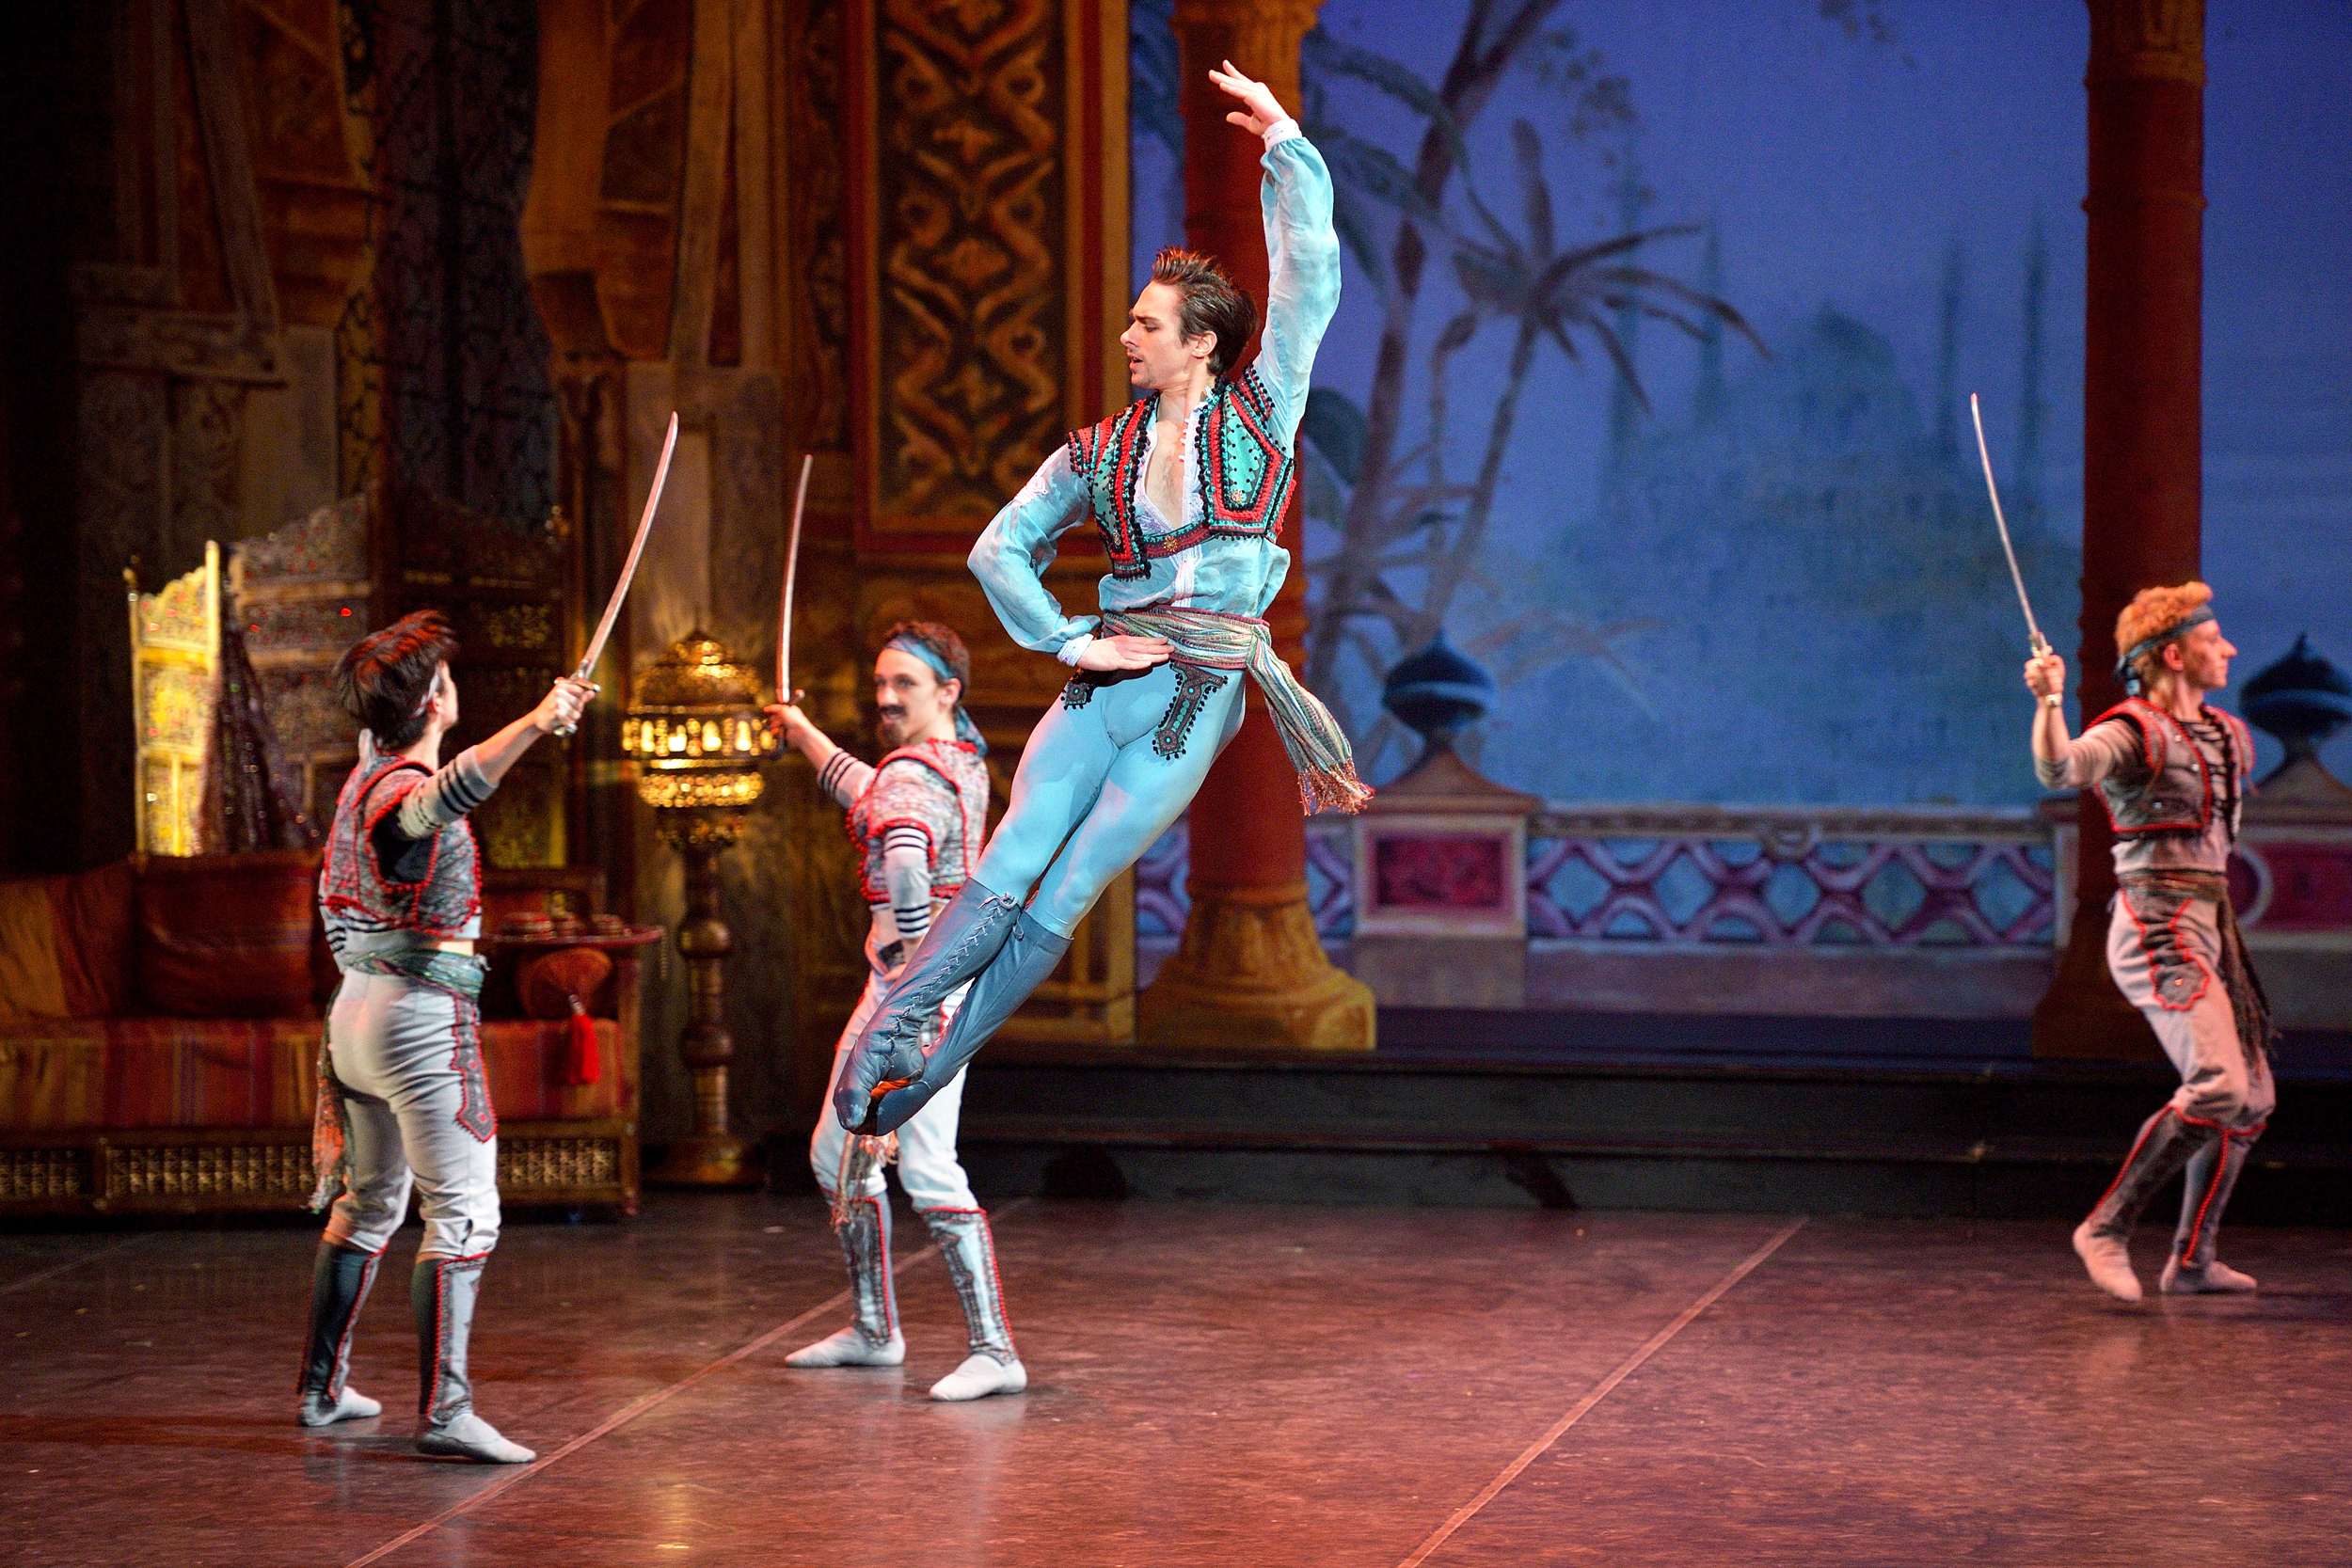 Francesco-Gabriele-Frola-as-Conrad-in-English-National-Ballets-Le-Corsaire-c-Laurent-Liotardo